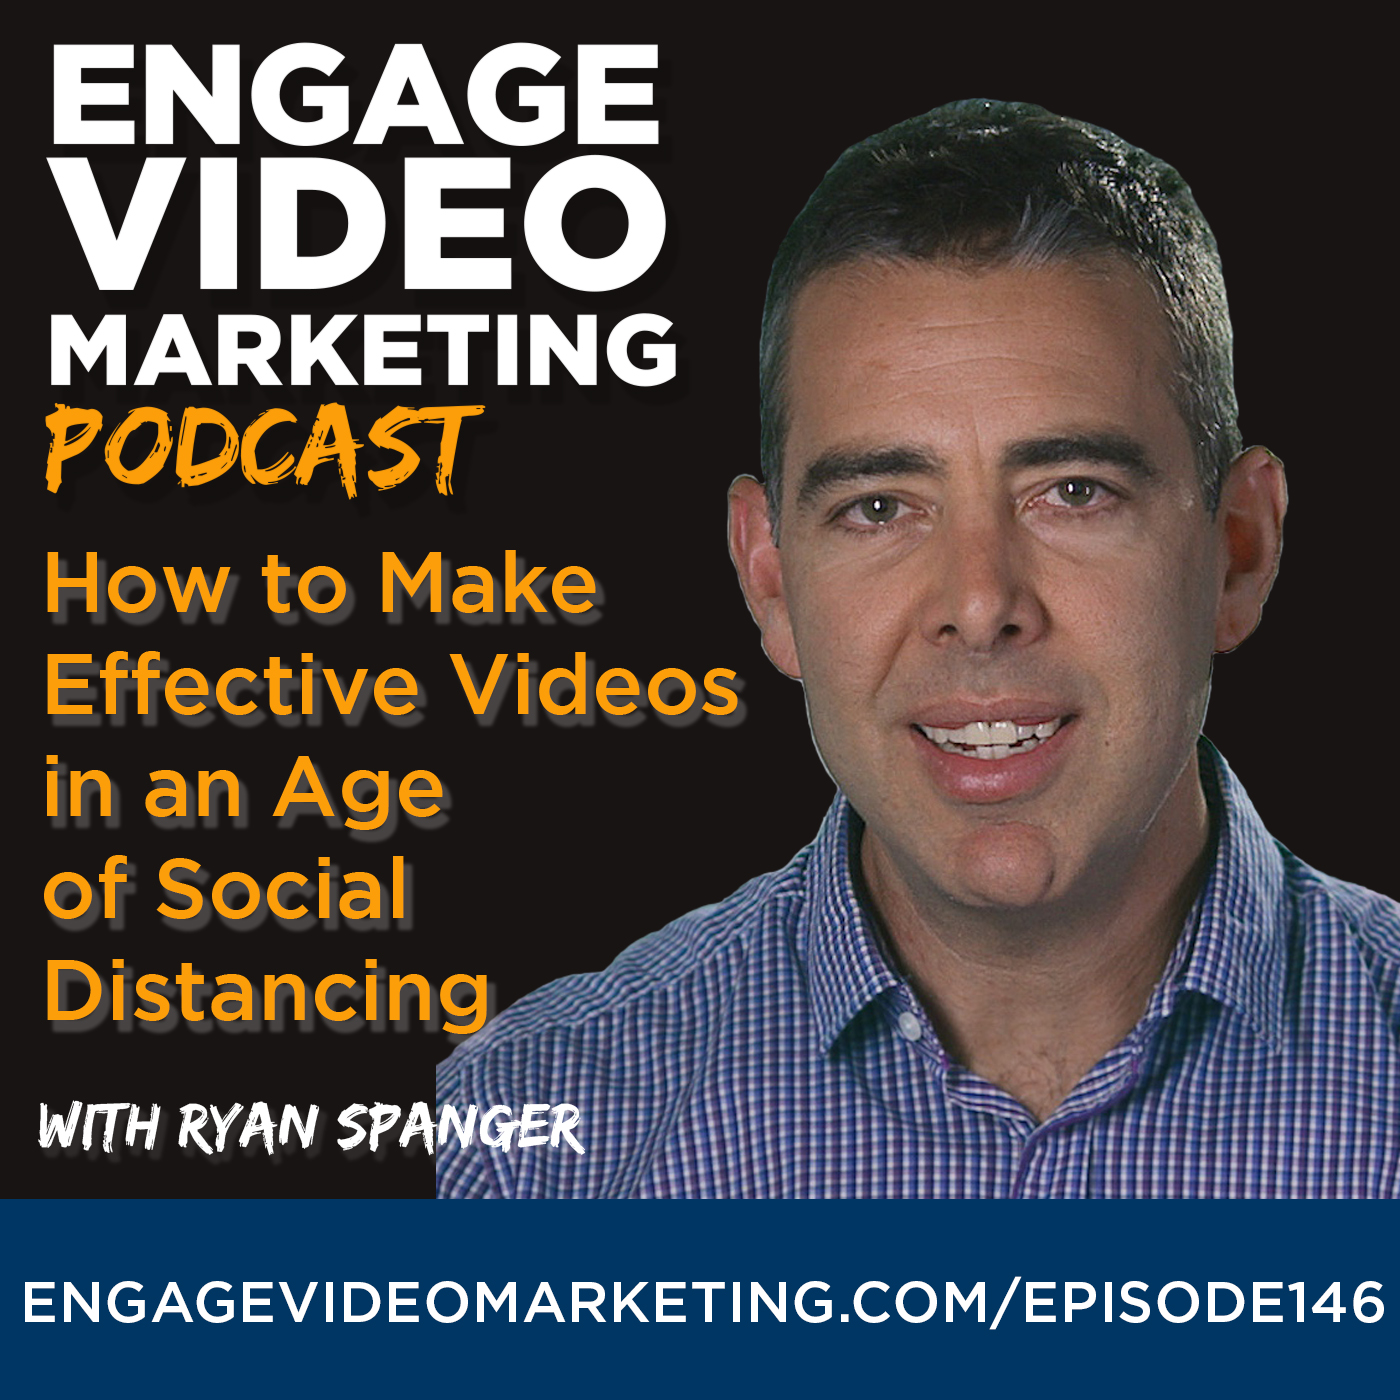 How to Make Effective Videos in an Age of Social Distancing with Ryan Spanger